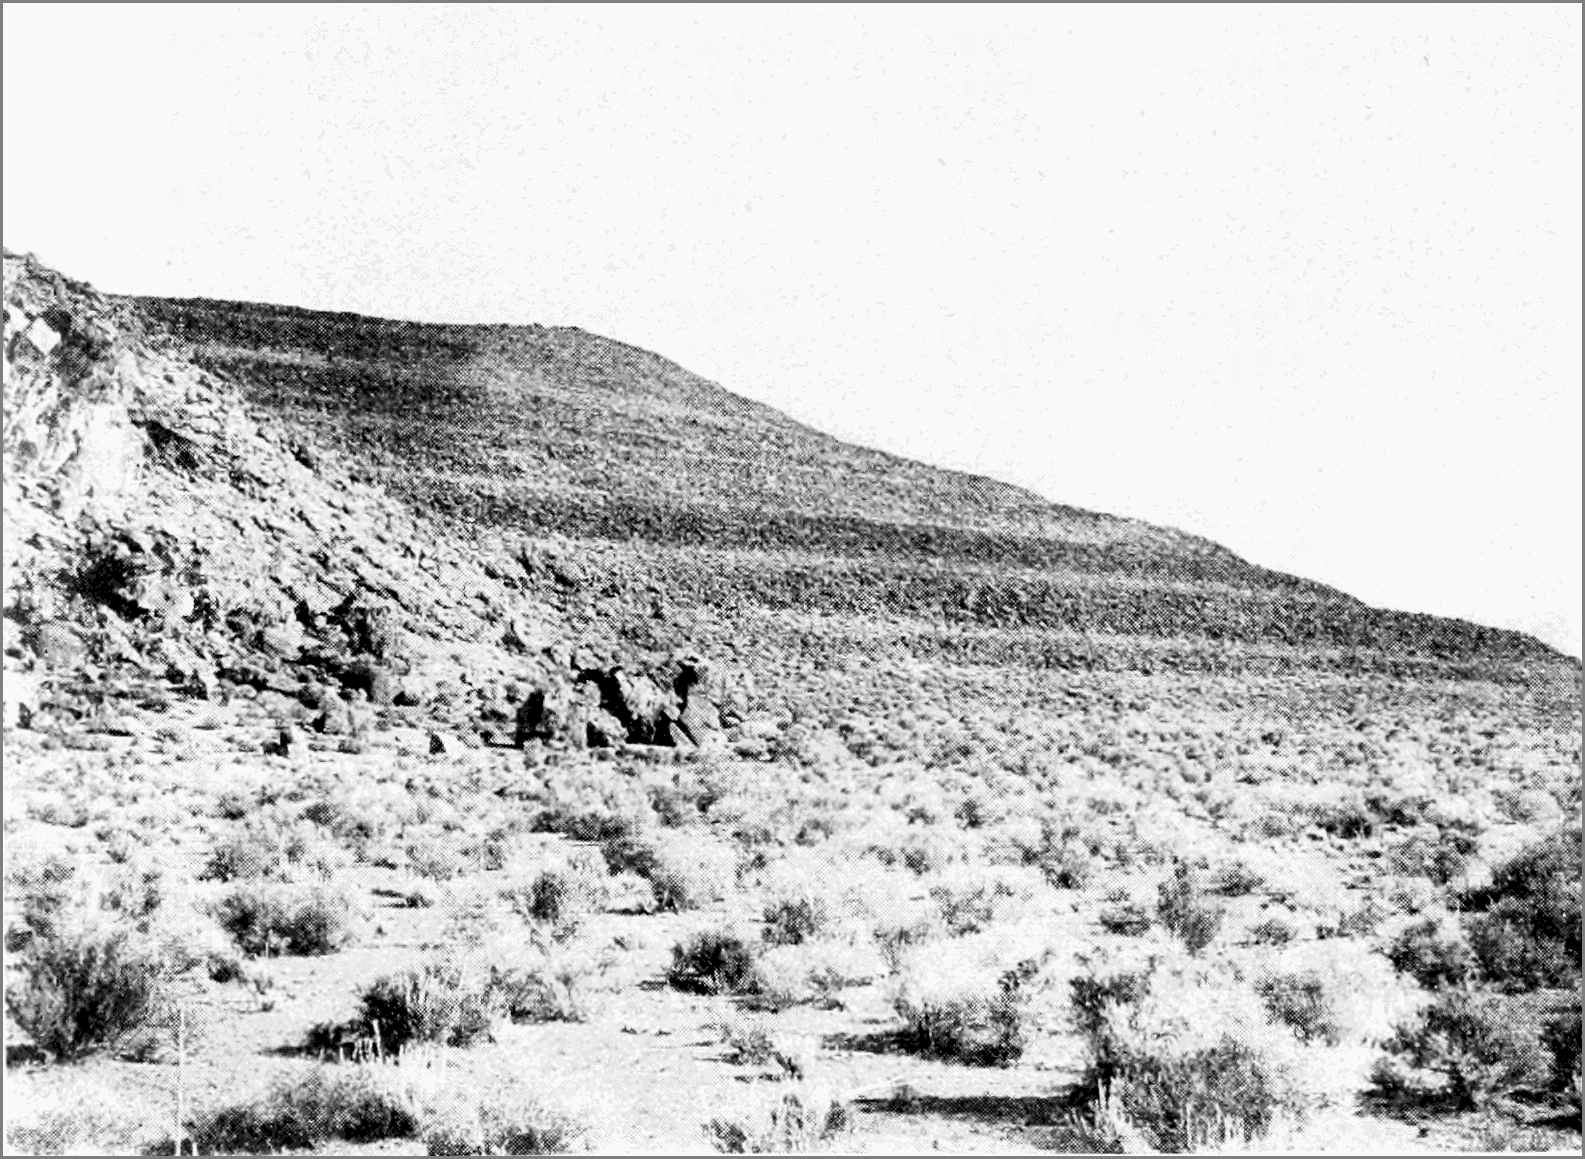 PSM V58 D516 Terraces of lake lahonton north of pyramid lake.png